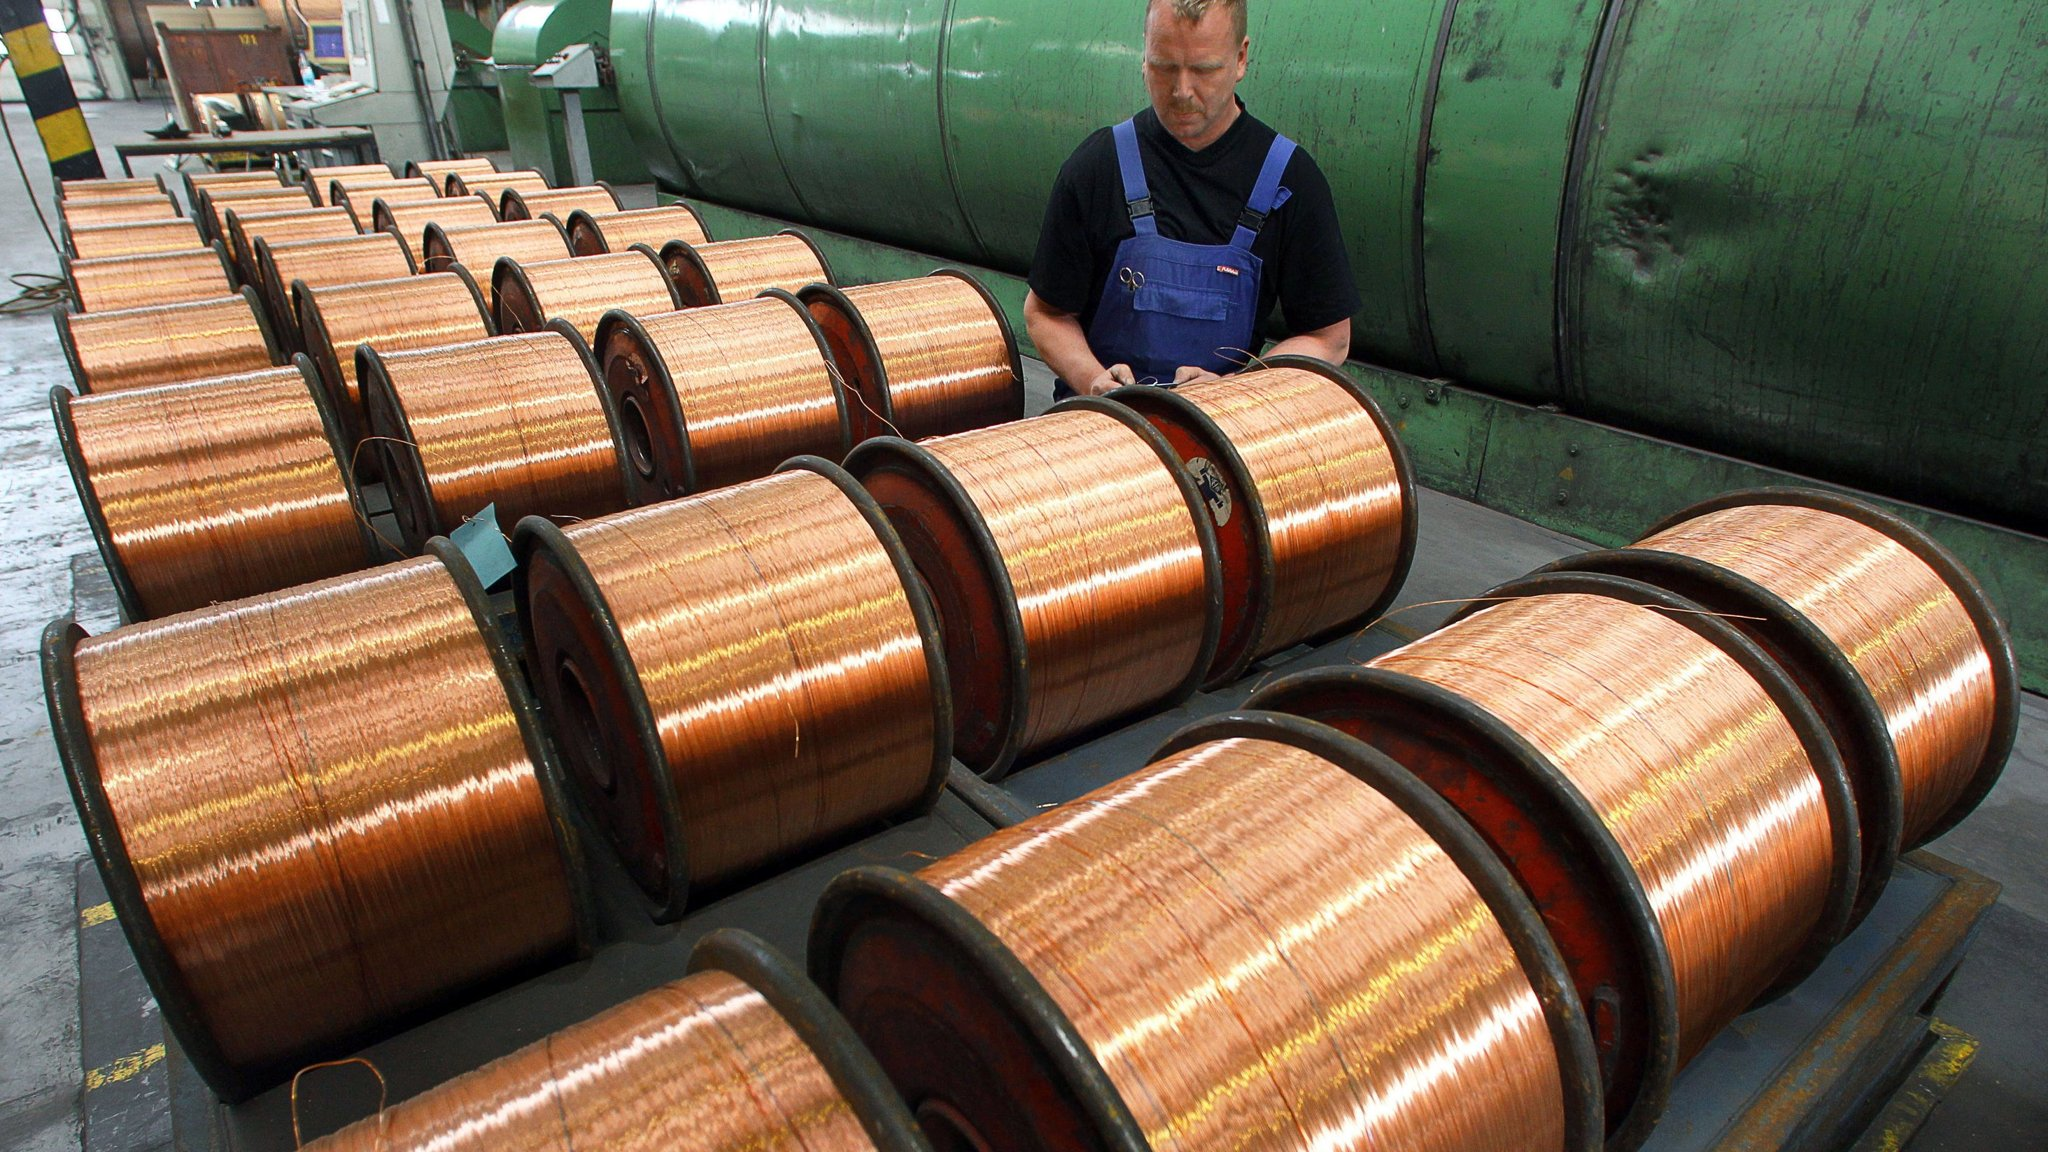 Copper prices climb to highest level in 4 years